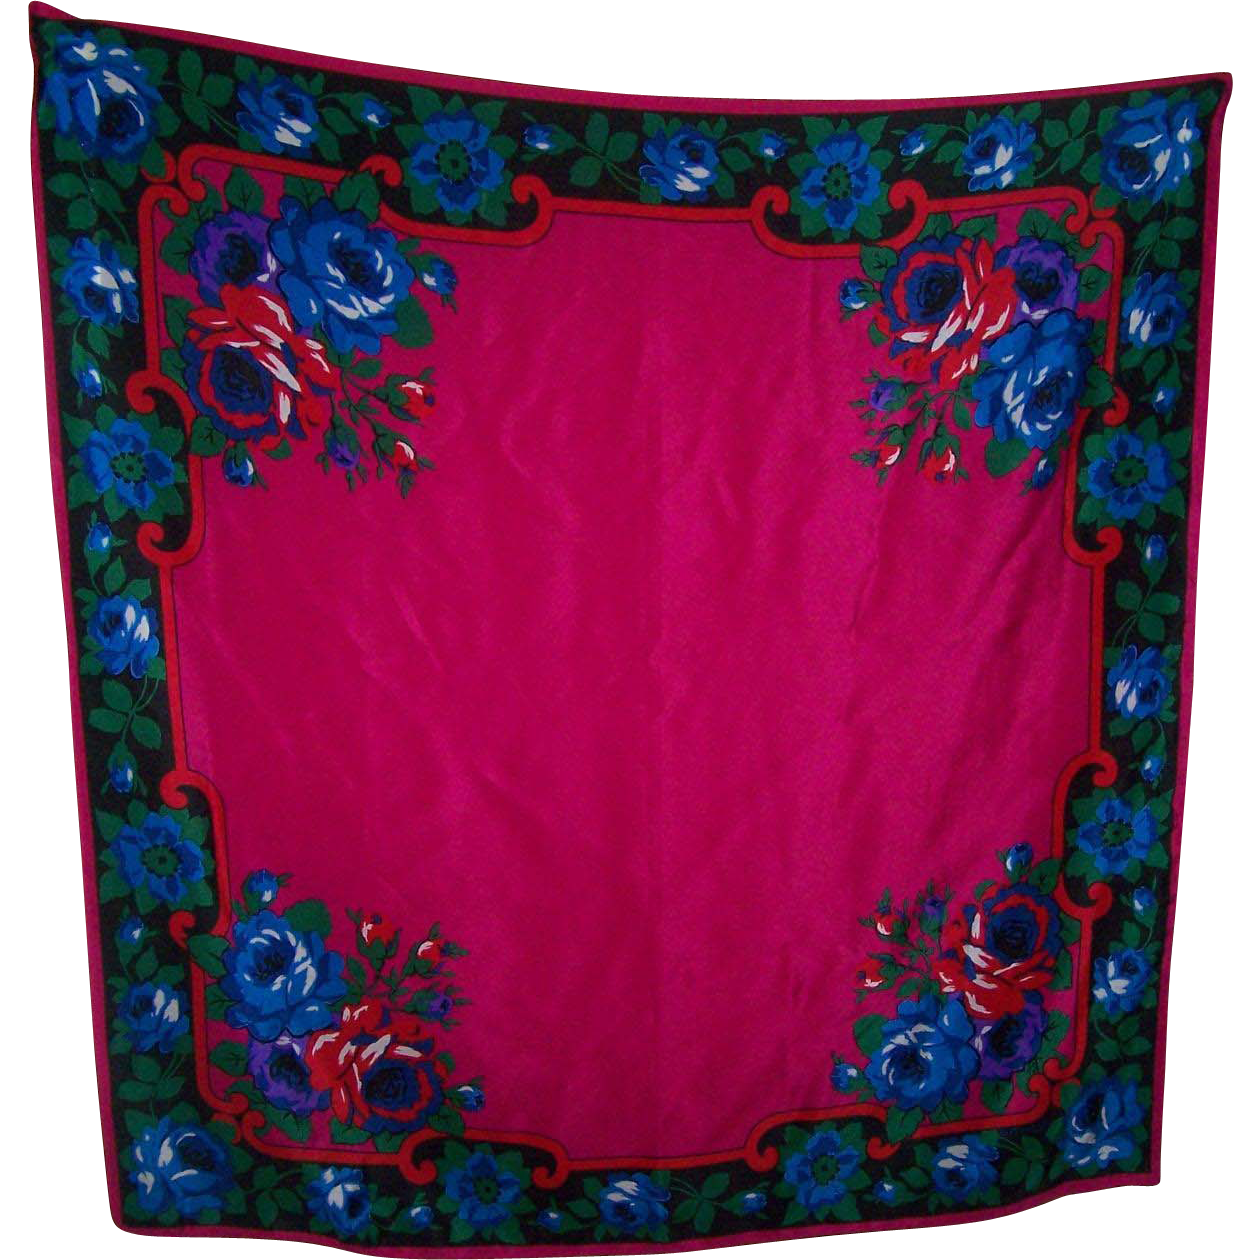 A Beautiful Large Floral Themed Silk Scarf Designer Signed ECHO Wearable ART